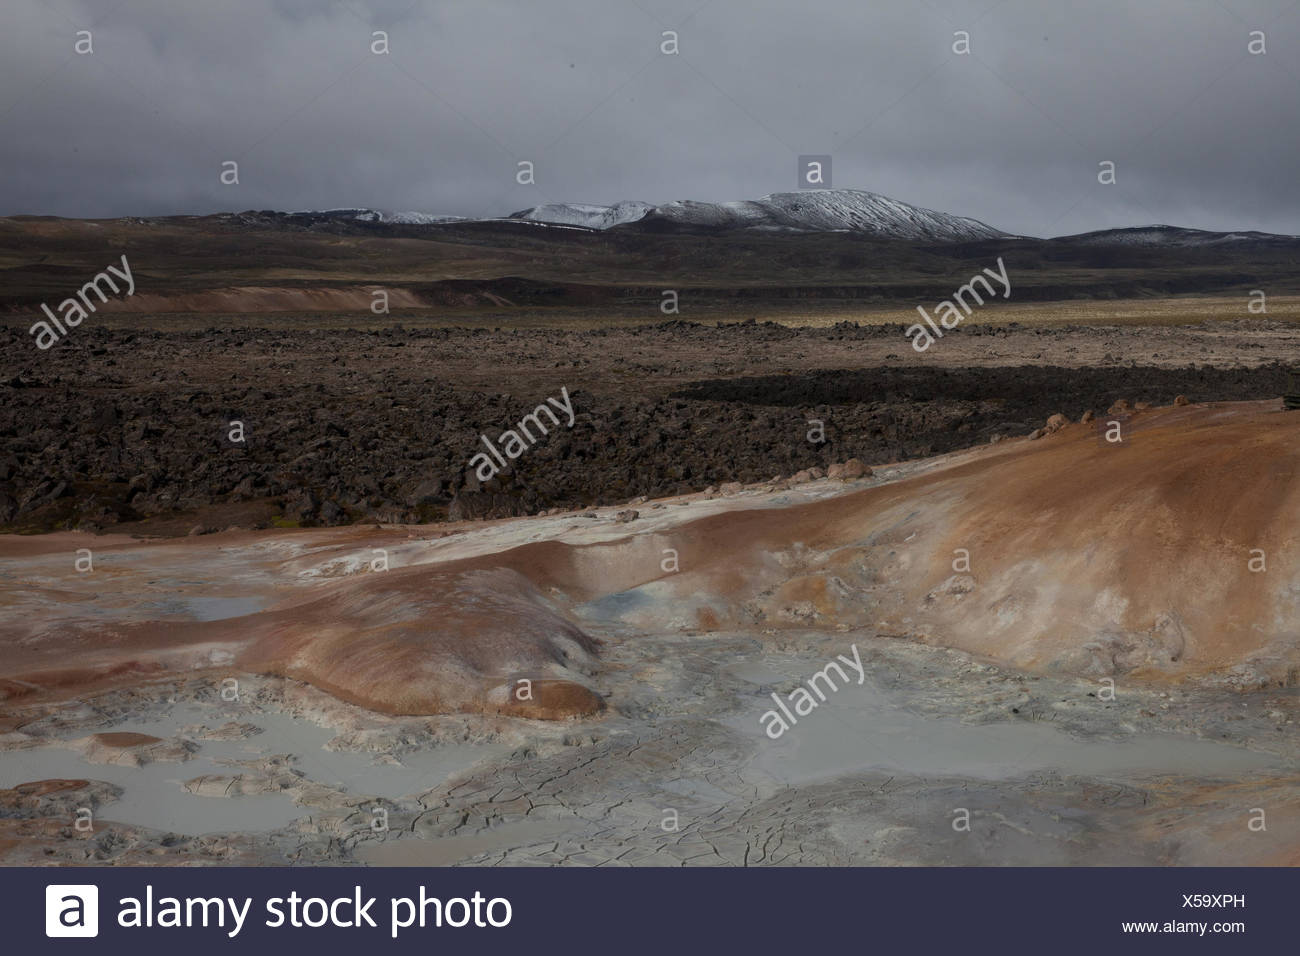 Cooled Volcanic Lava Against Arid Landscape - Stock Image